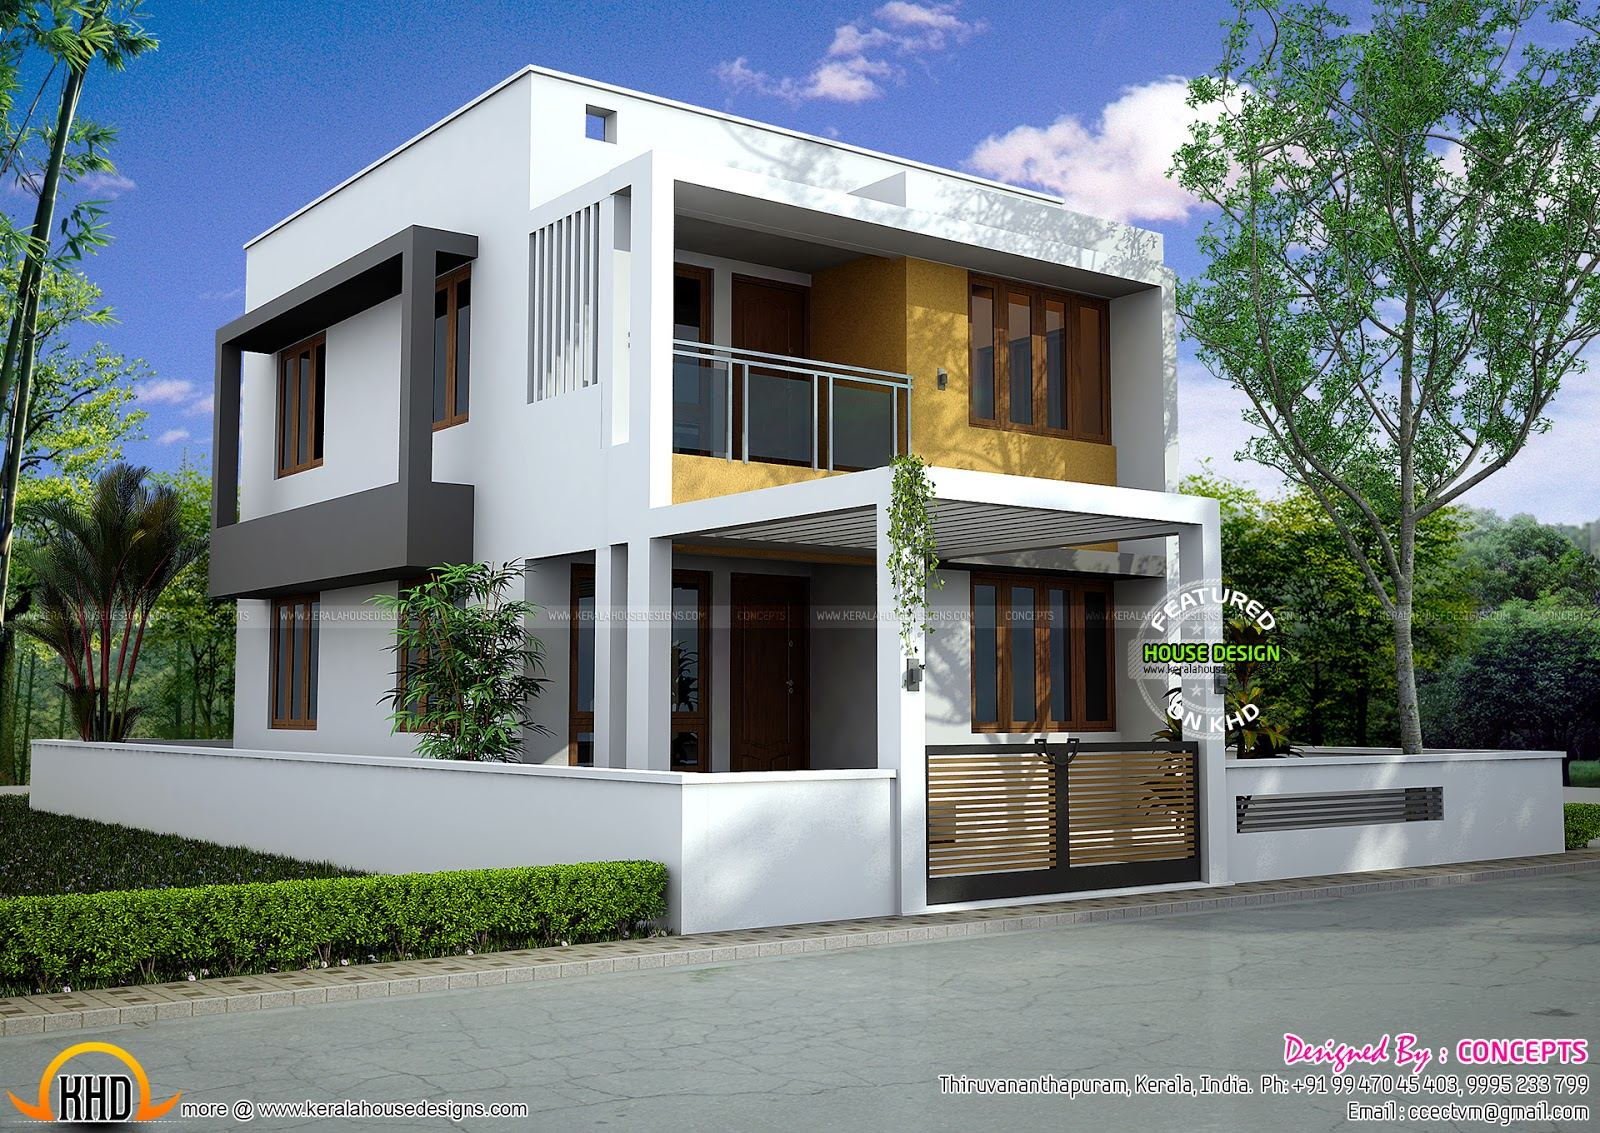 Floor plan of modern 3 bedroom house kerala home design for 3 bed room home